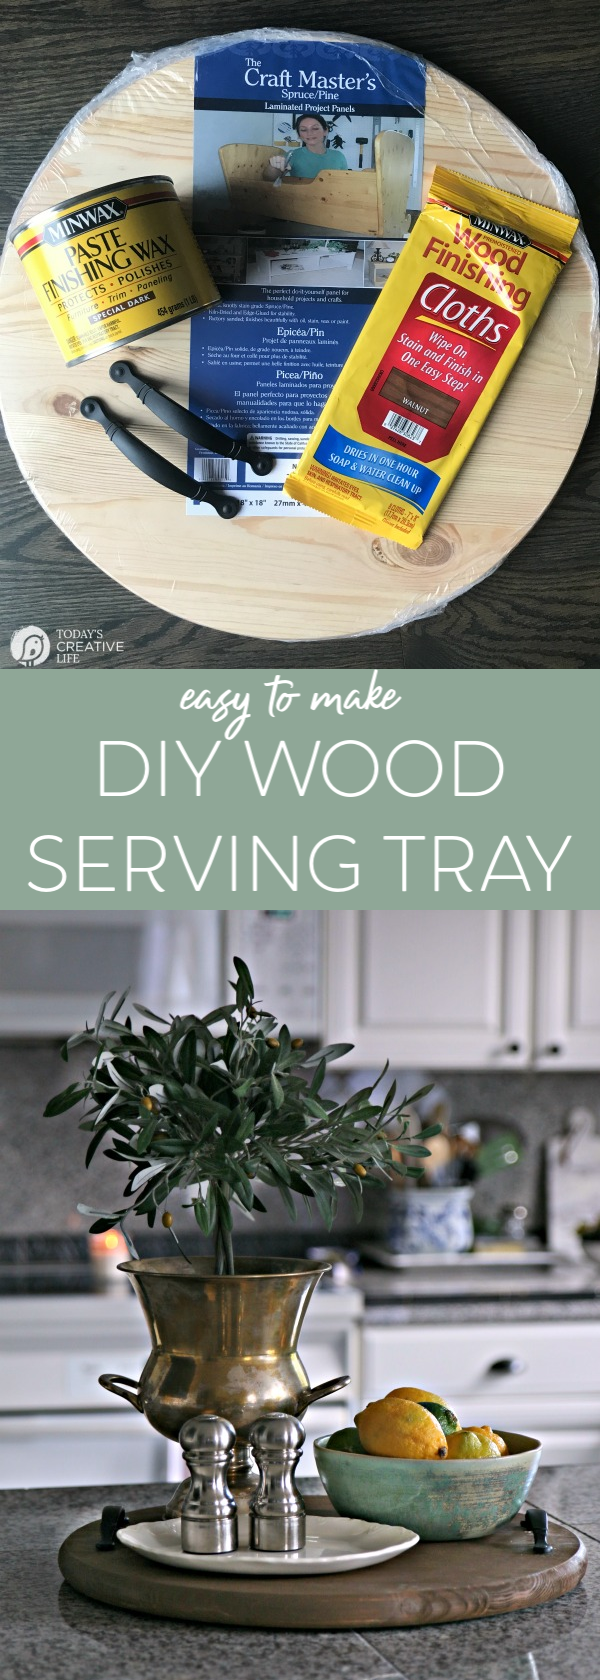 Diy Round Wood Serving Tray Today S Creative Life